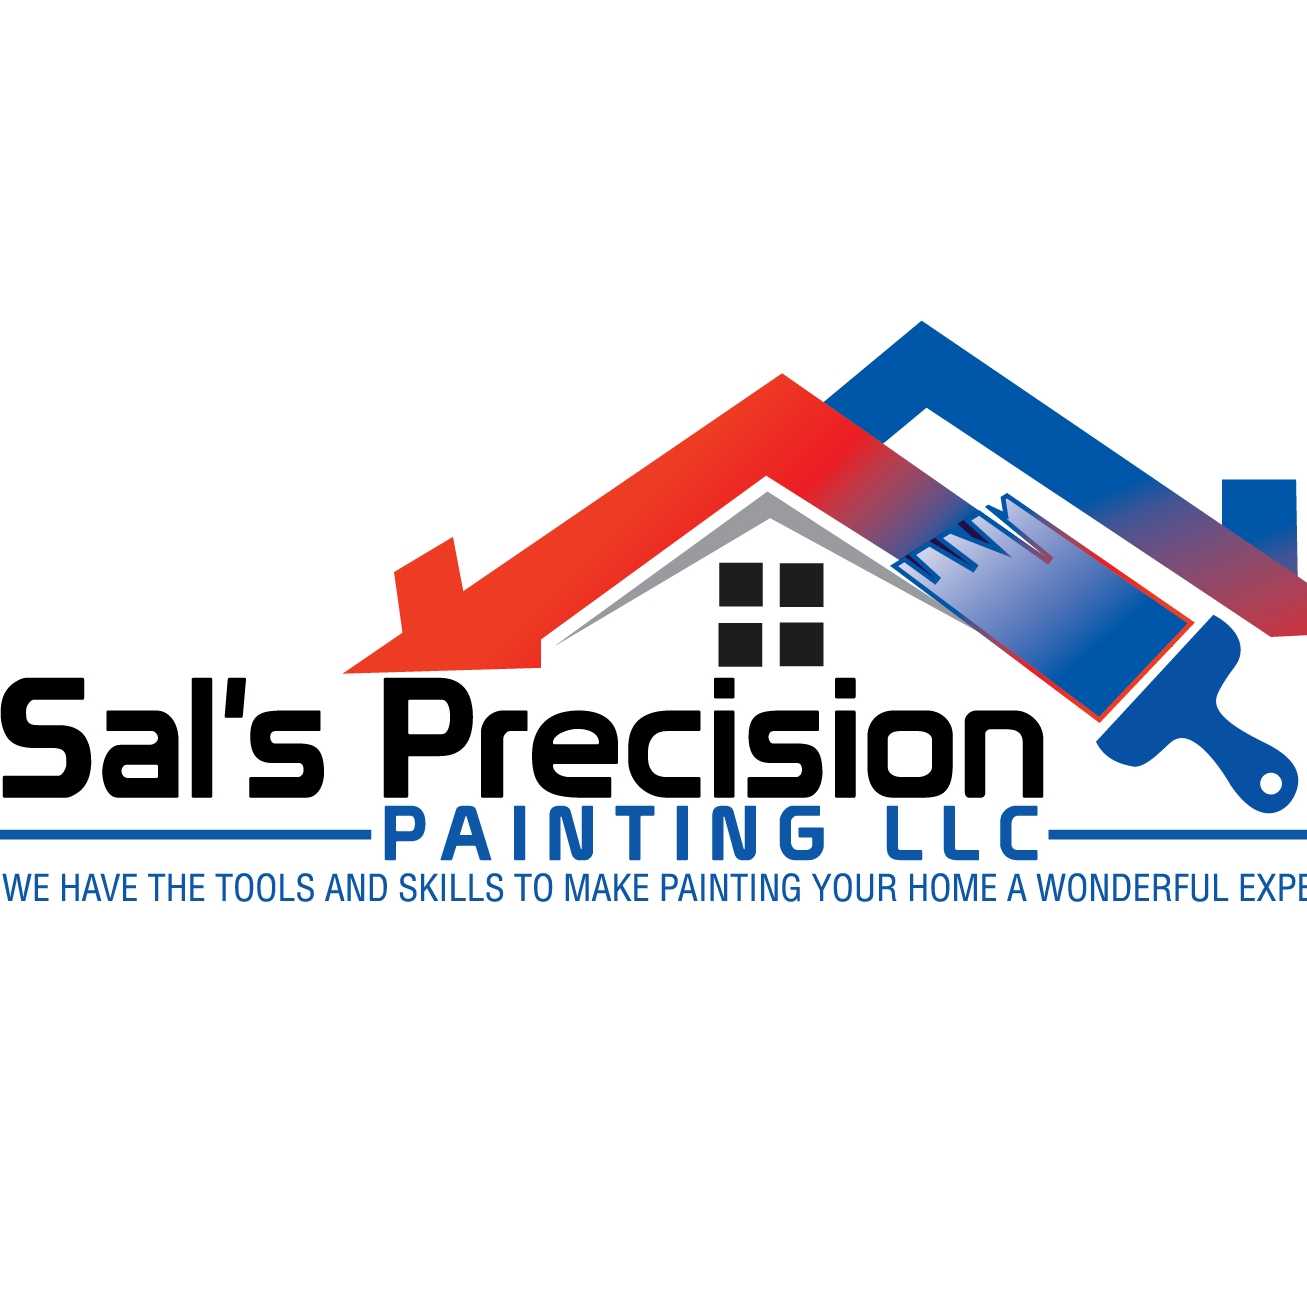 Sal's precision painting